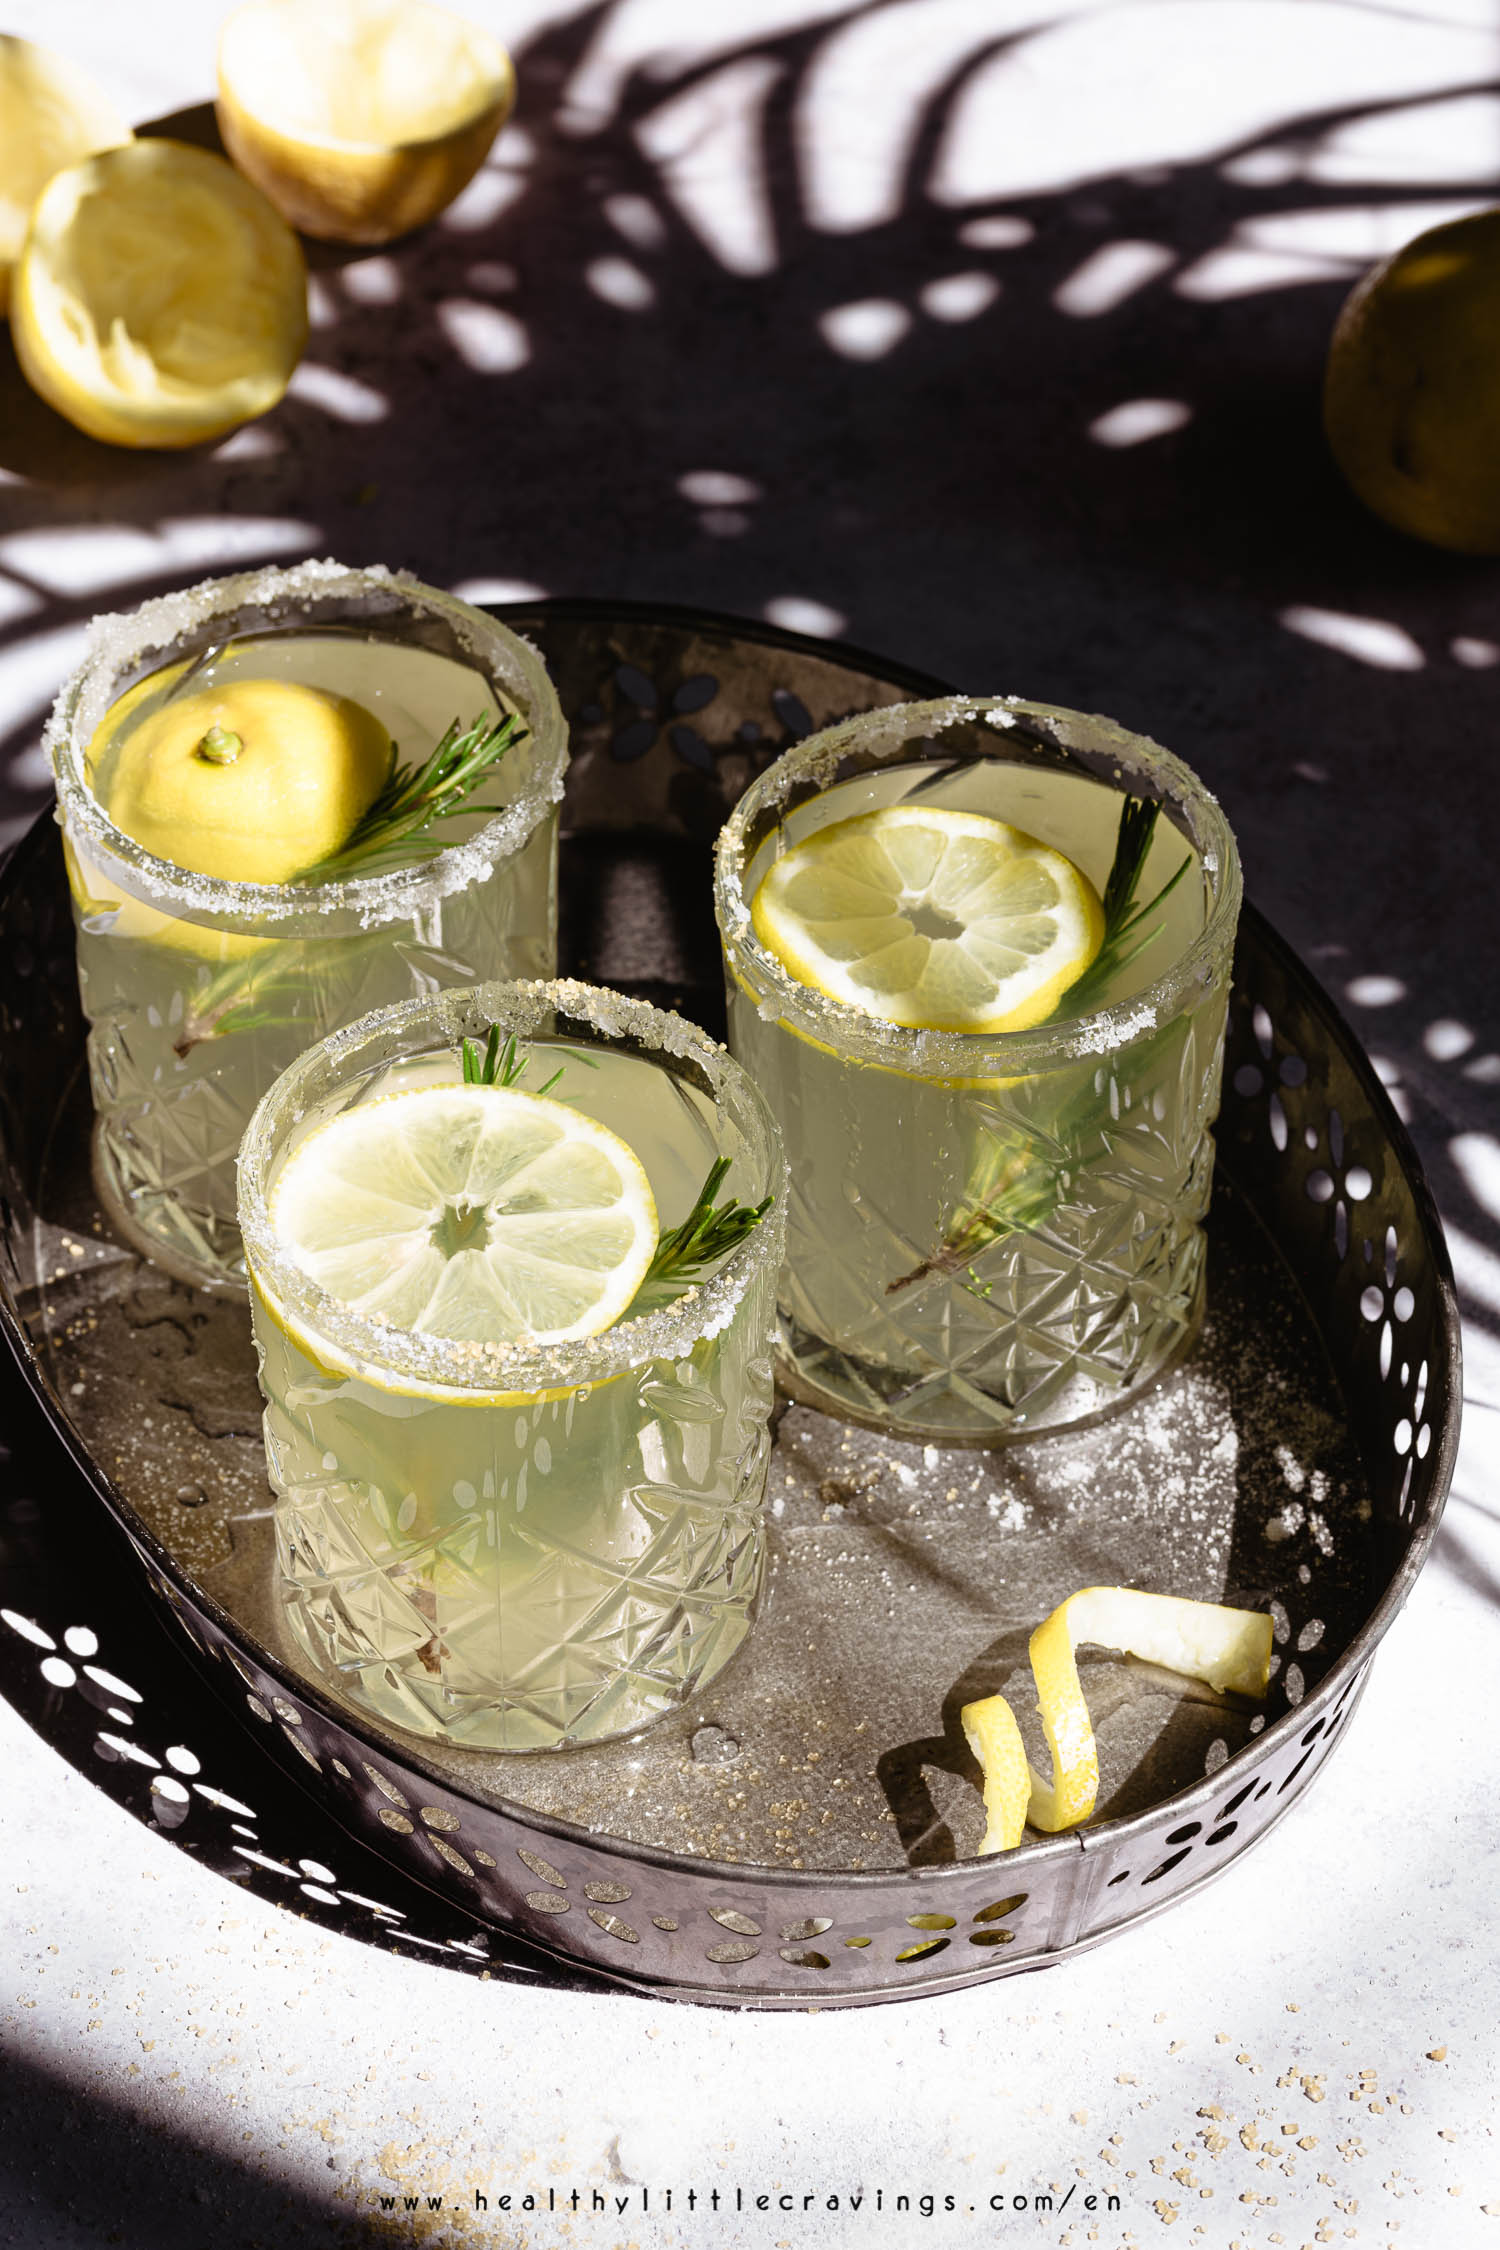 Refreshing rosemary lemonade into 3 glasses